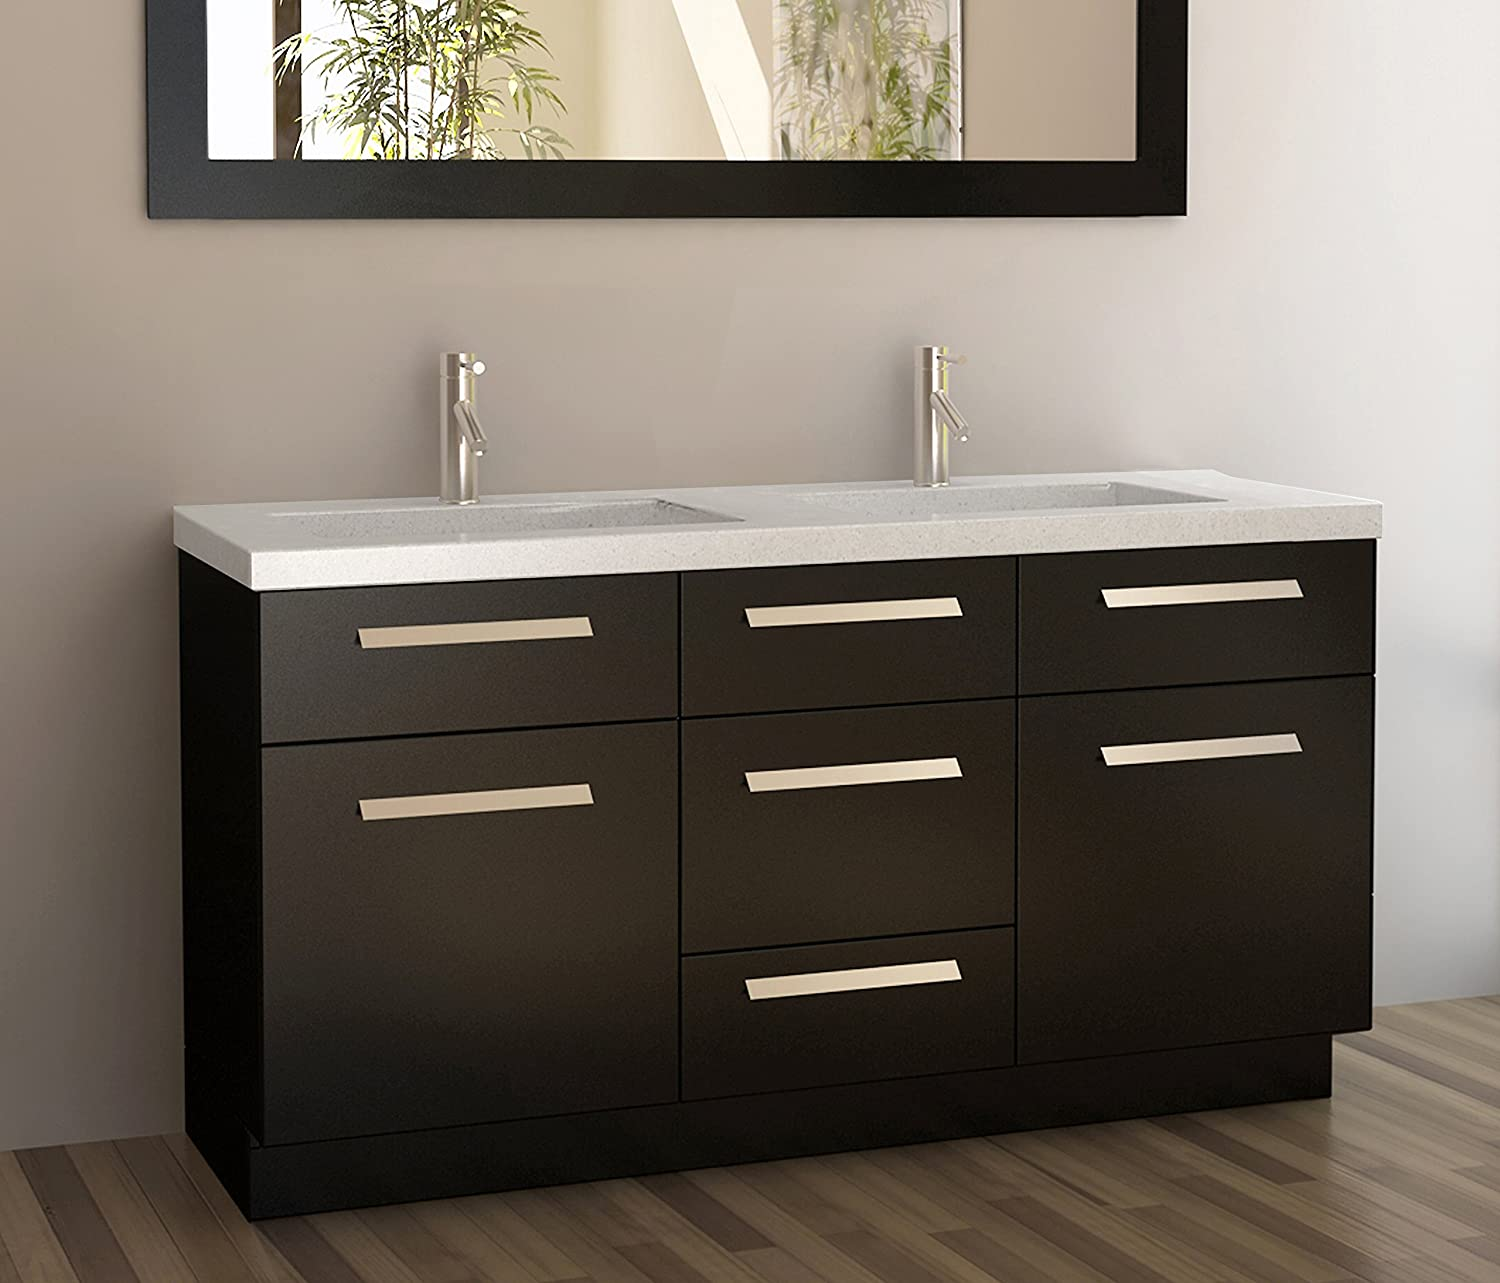 bathroom vanity set. Design Element Moscony Double Sink Vanity Set with Espresso Finish  60 Inch Bathroom Vanities Amazon com